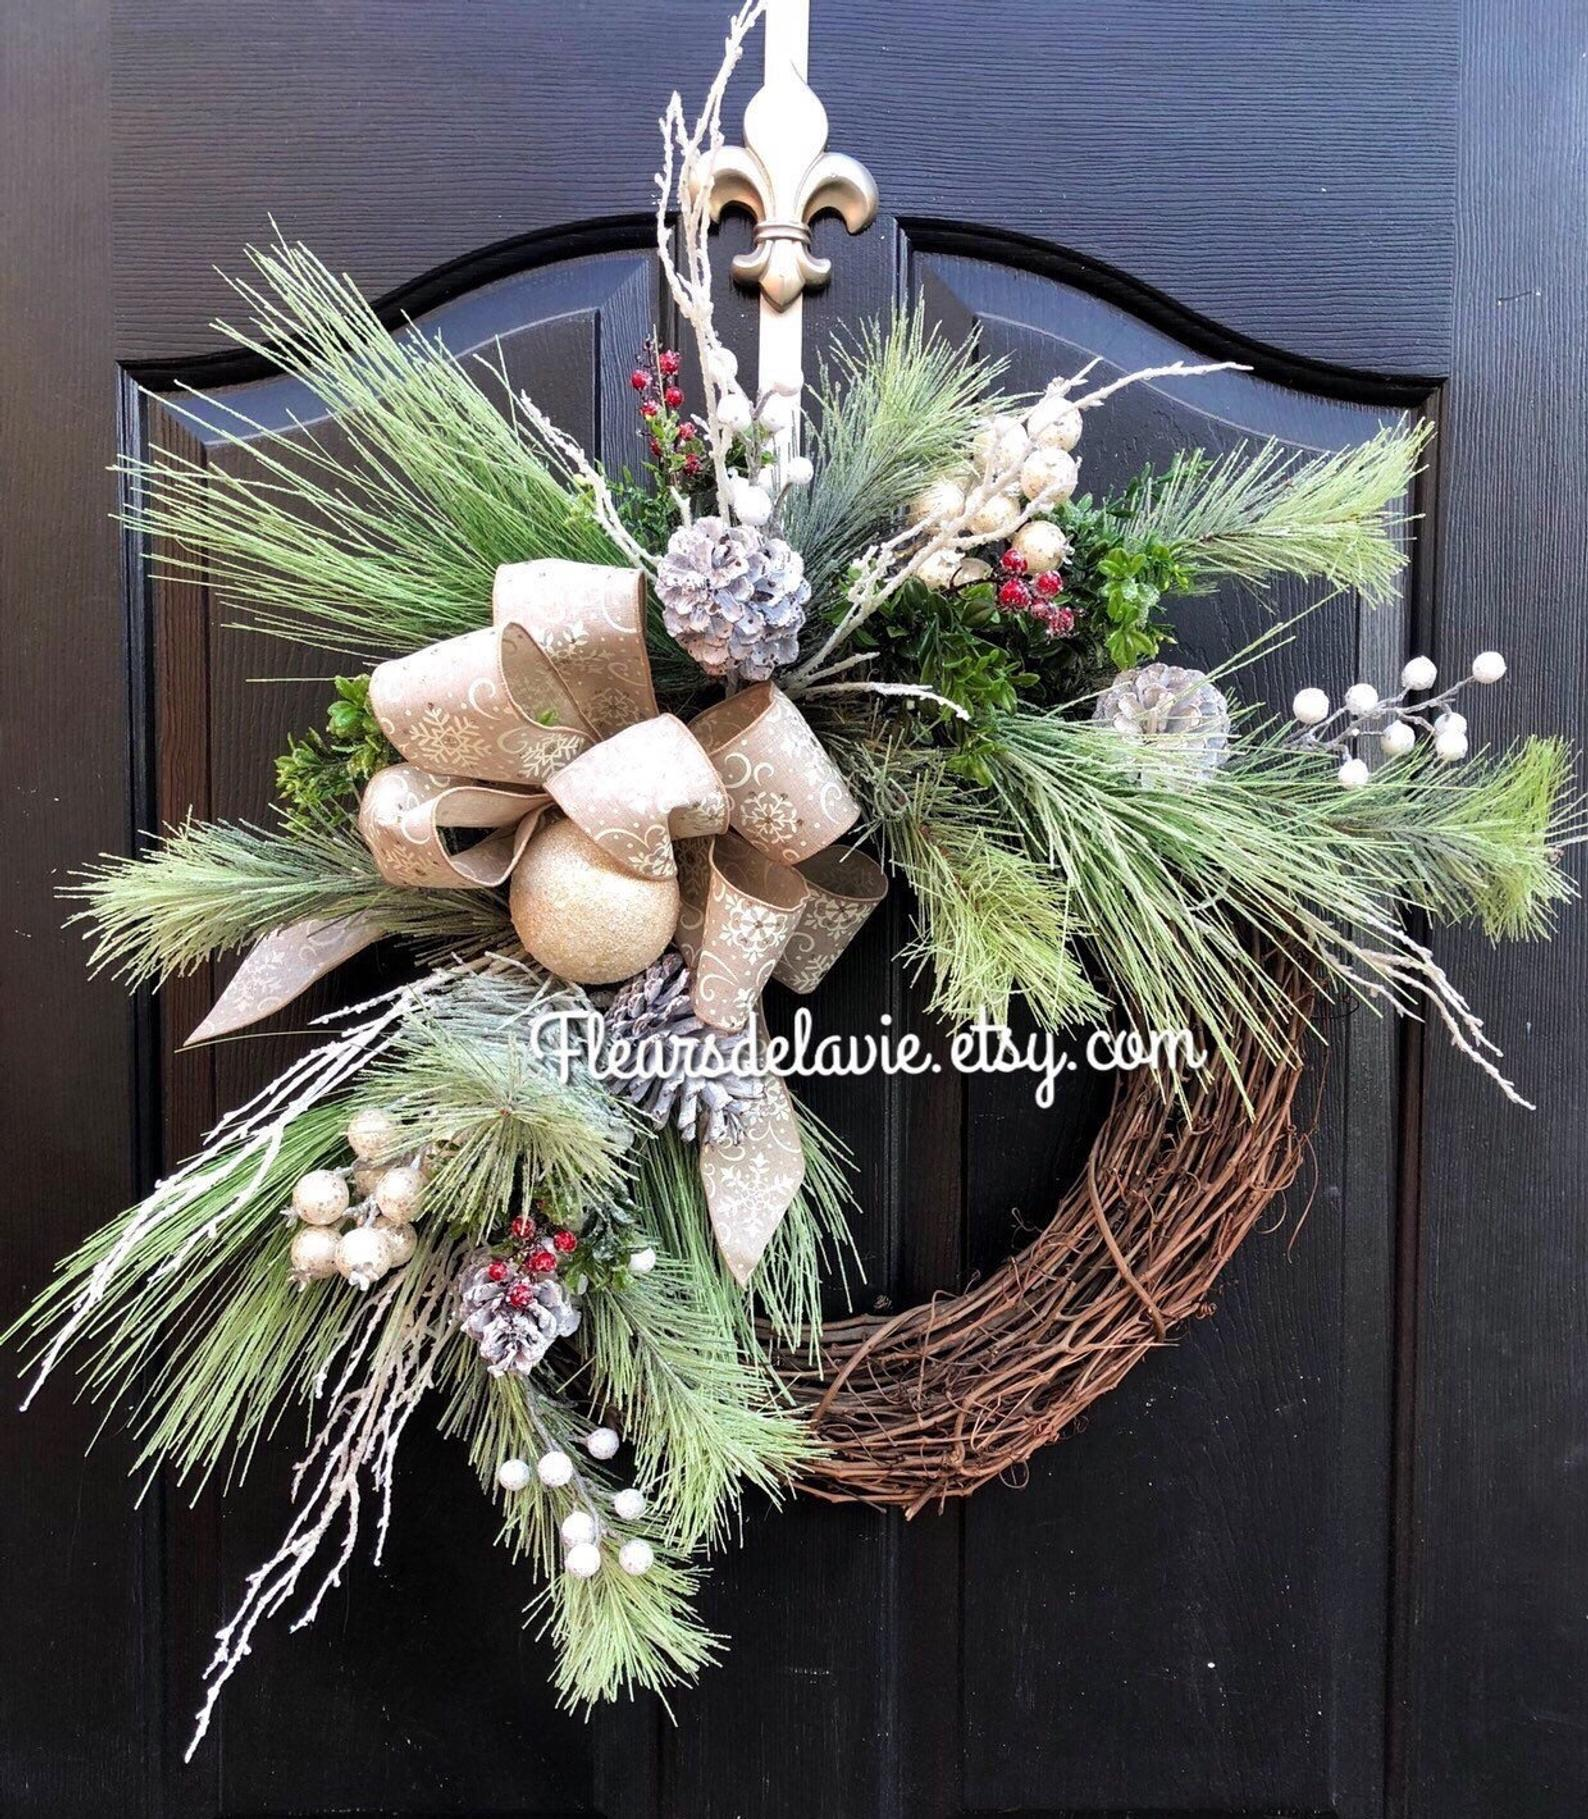 Grapevine Frosted Etsy Christmas Wreaths